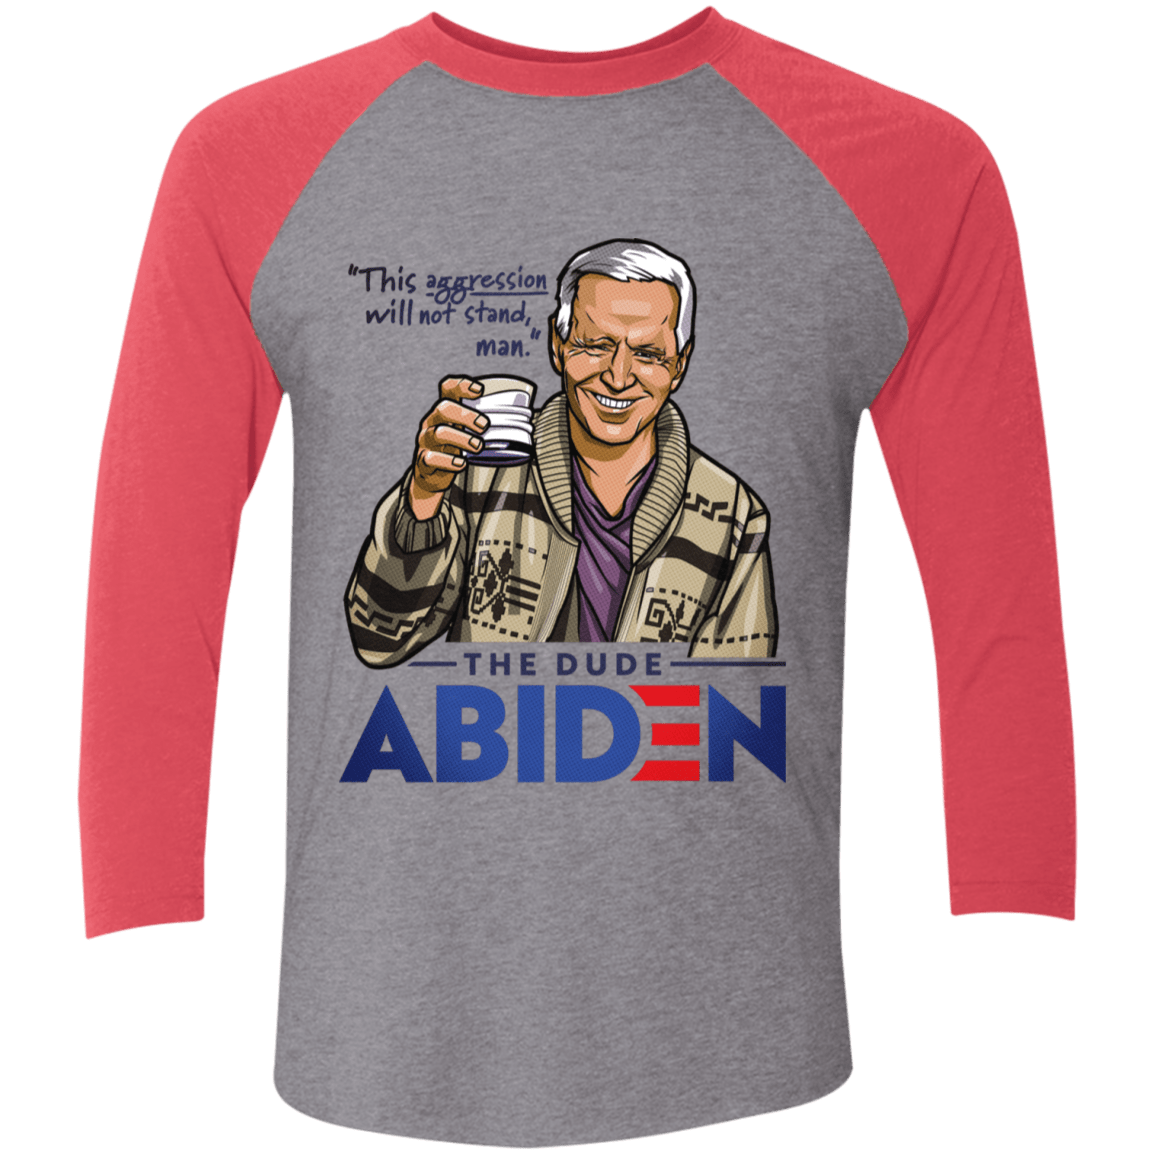 T-Shirts Premium Heather/Vintage Red / S The Dude Abiden Men's Triblend 3/4 Sleeve